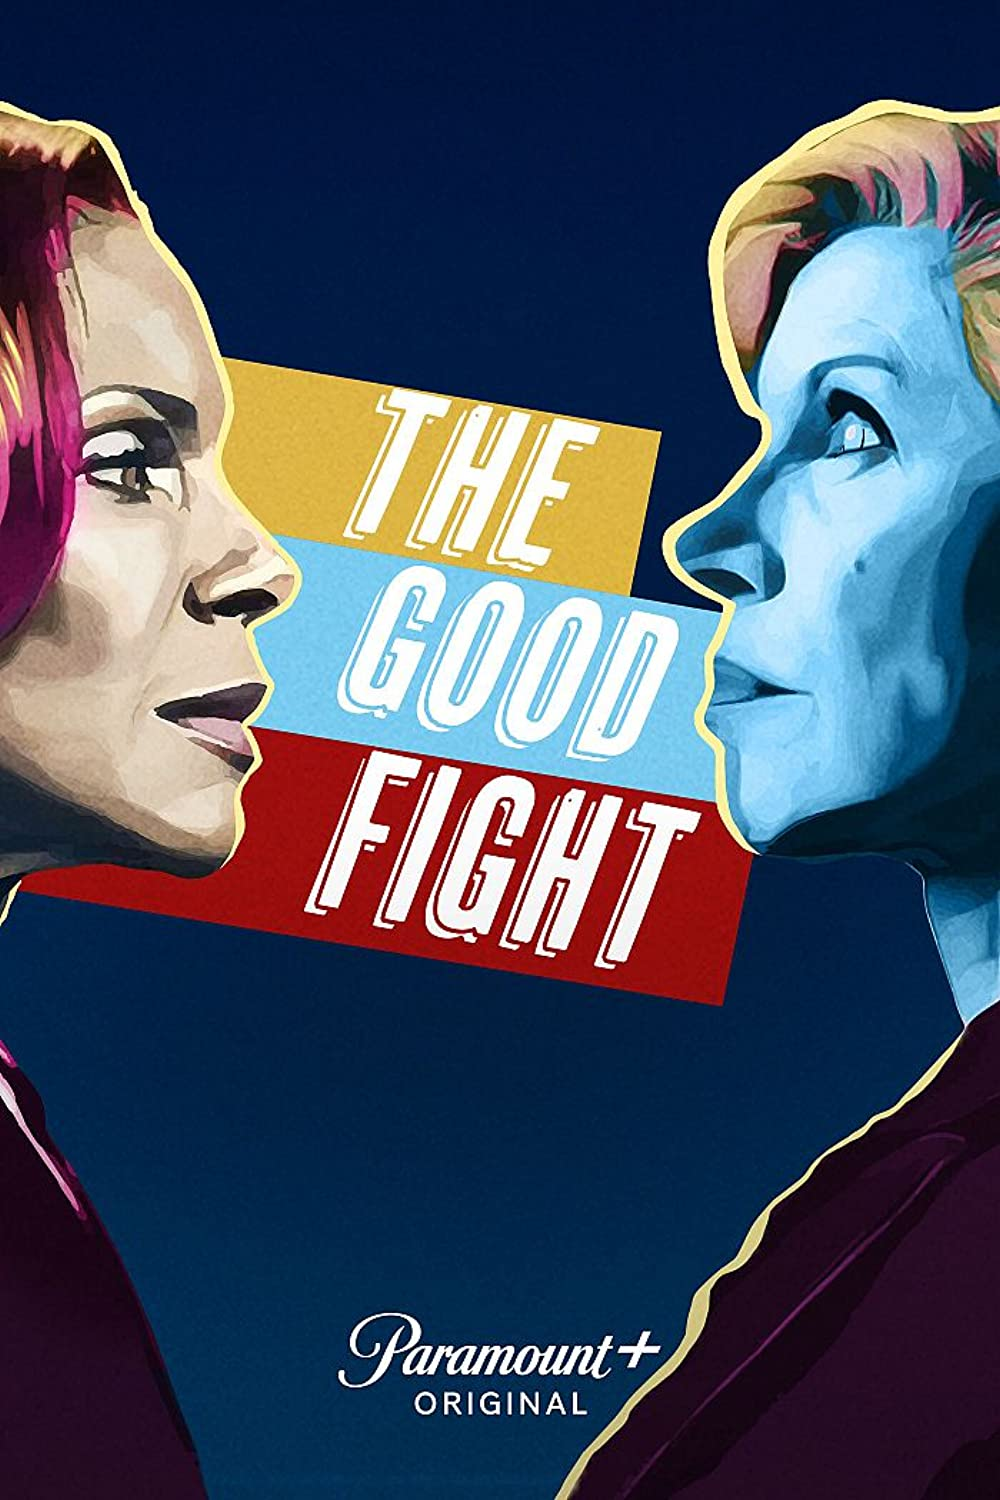 The Jury Has Reached A Verdict: Point Classics Track Placed in 'The Good Fight'